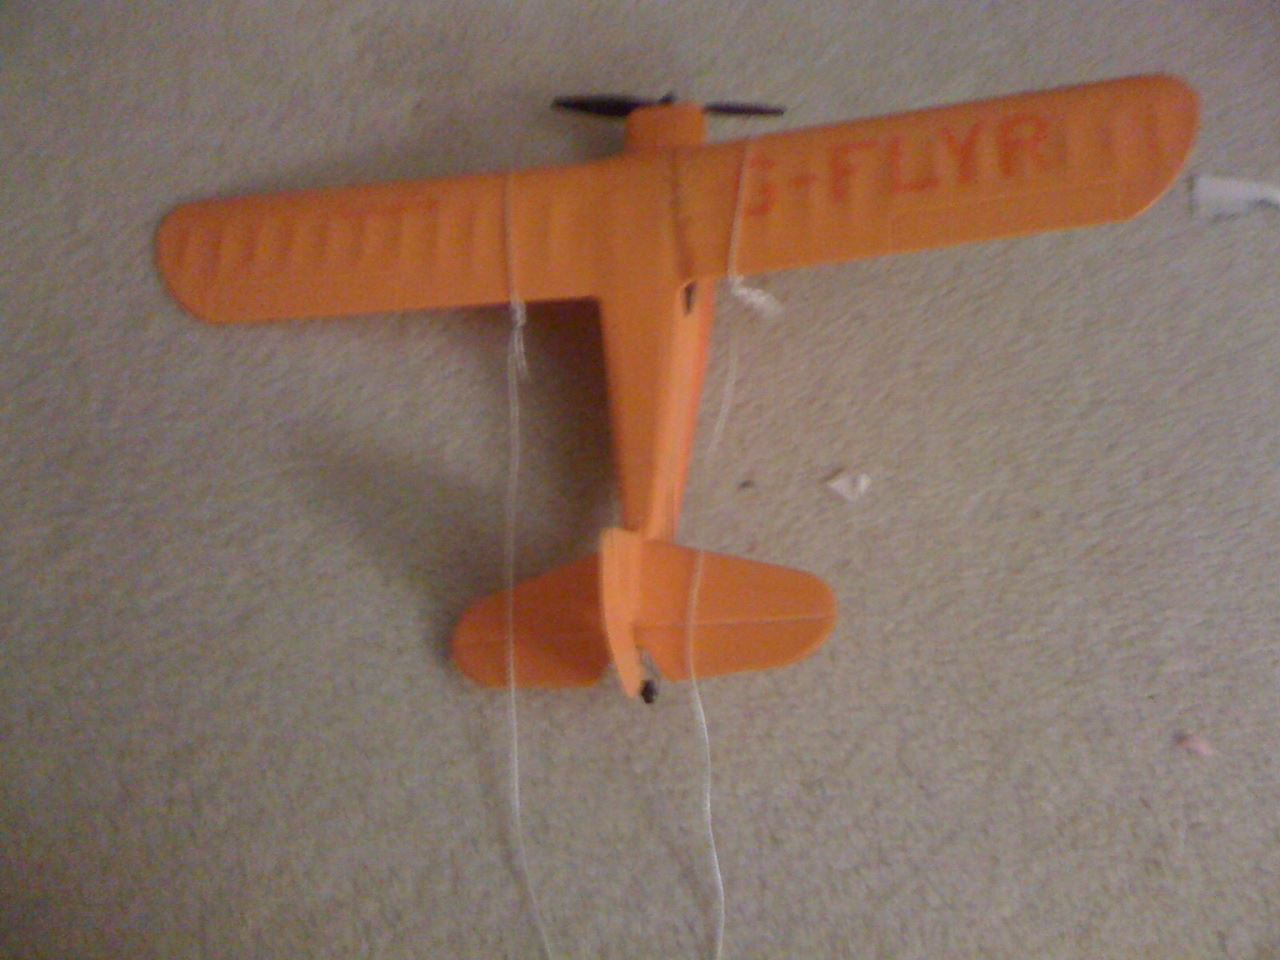 How to Make a Banner for a Lightweight RC Plane